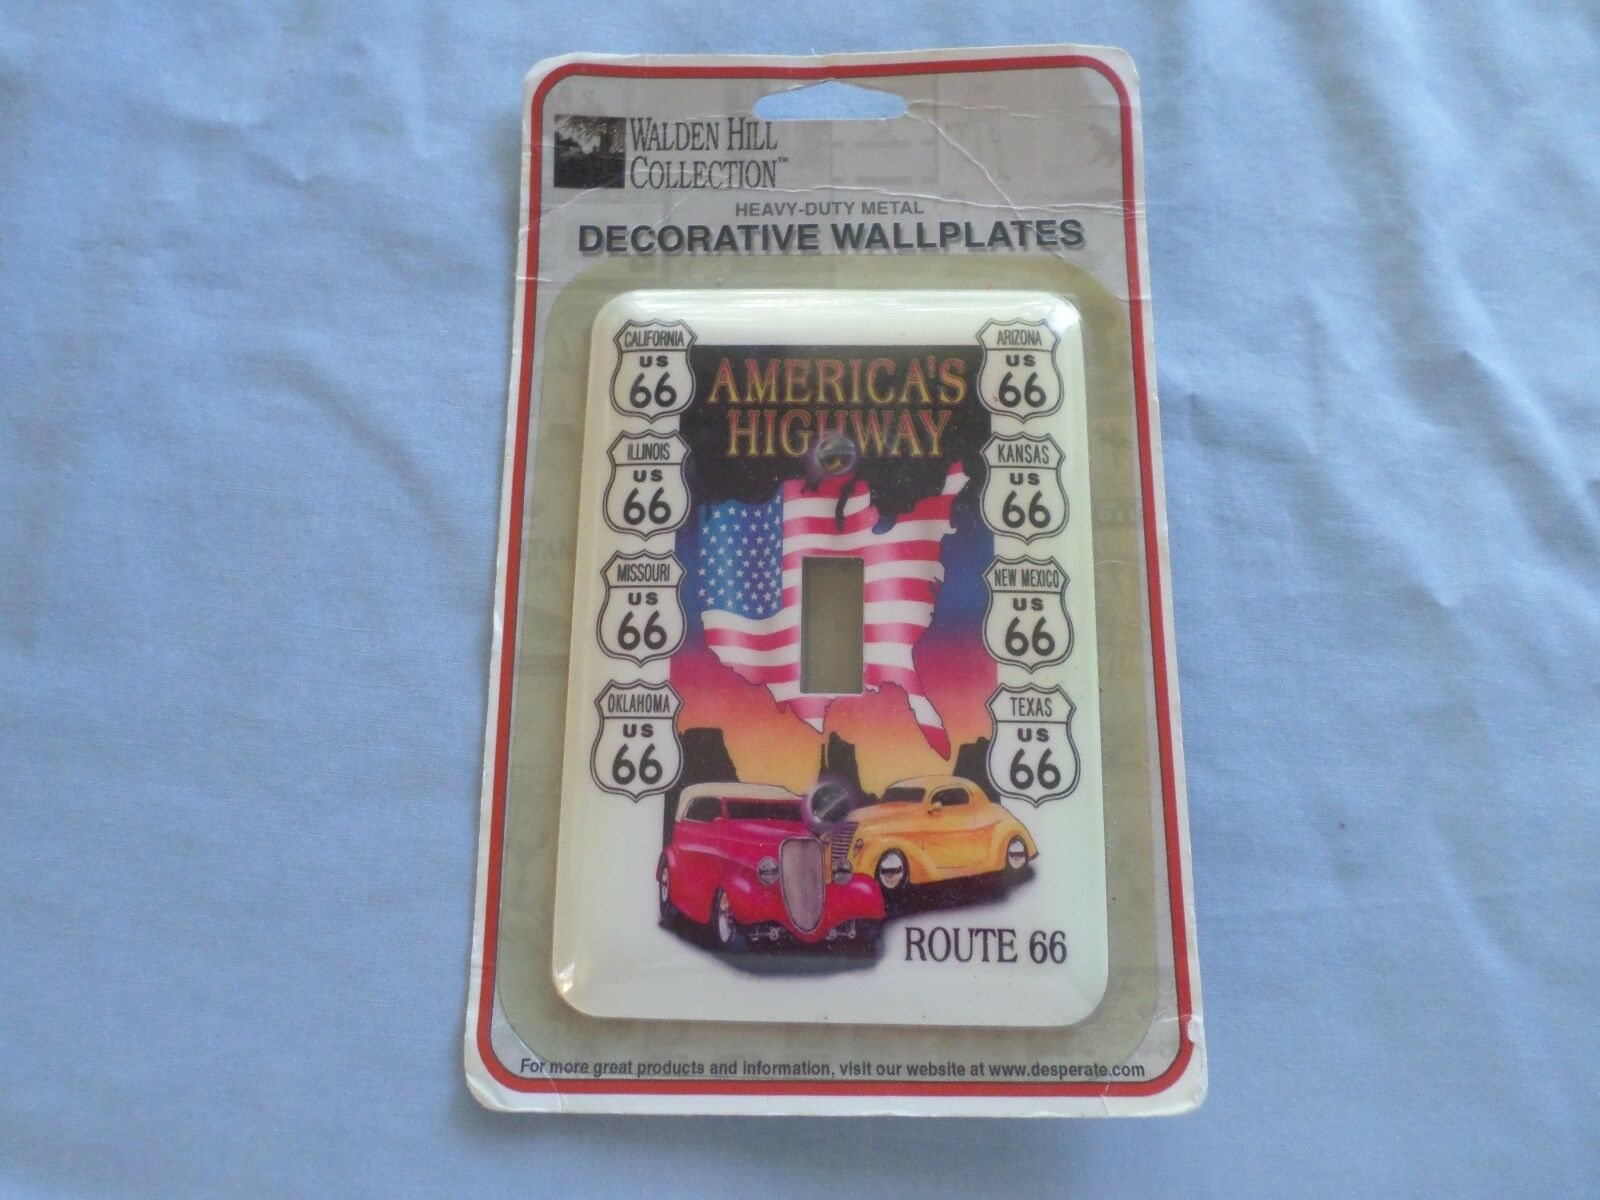 Walden Hill Collection Decorative Wallplate Light Switch Cover Route 66 New For Sale Online